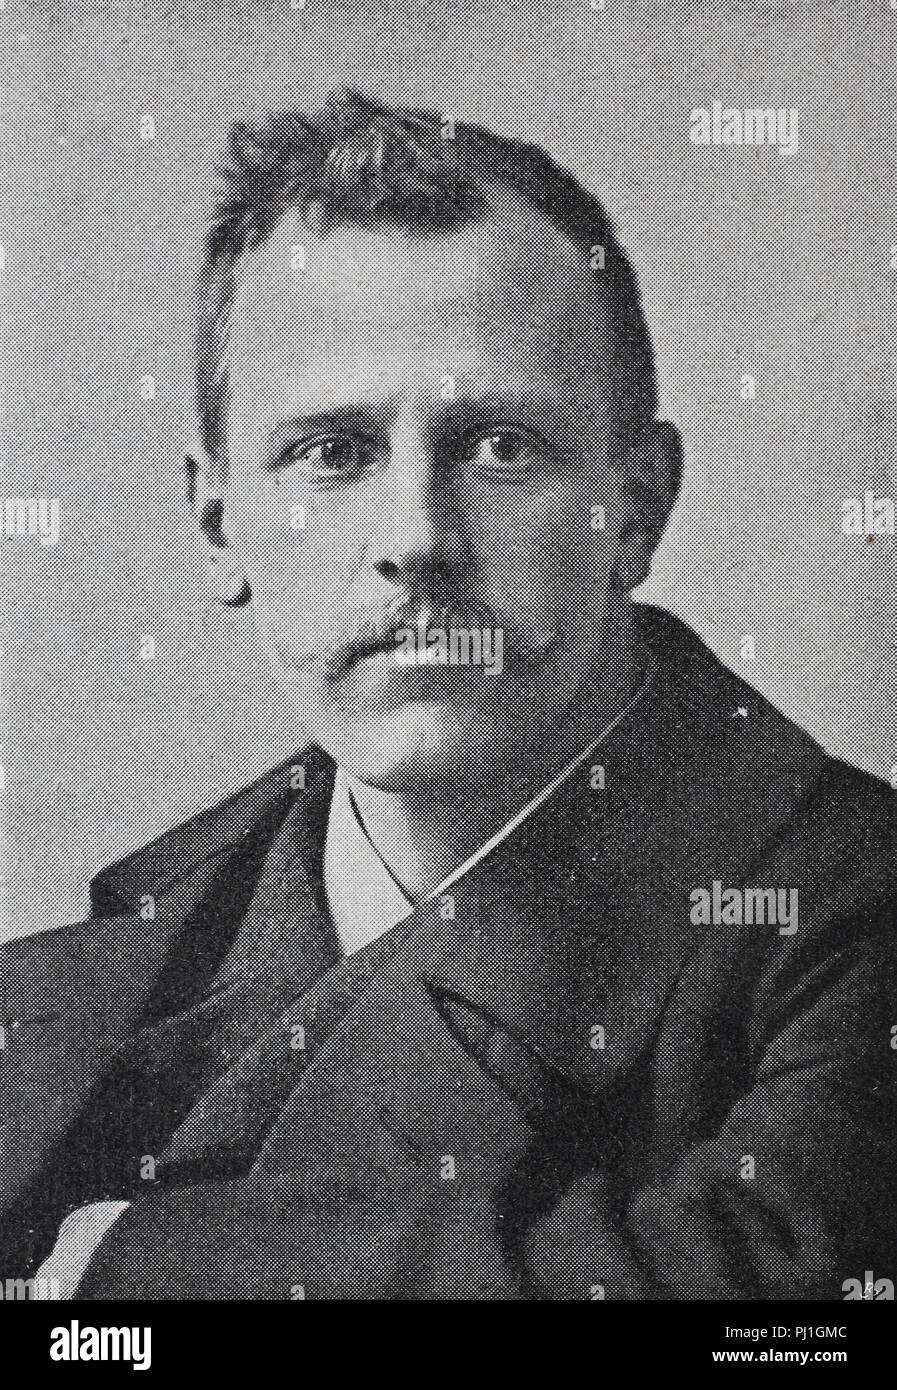 Fridtjof Nansen, 10 October 1861 – 13 May 1930, was a Norwegian explorer, scientist, digital improved reproduction of an woodprint from the year 1890 - Stock Image